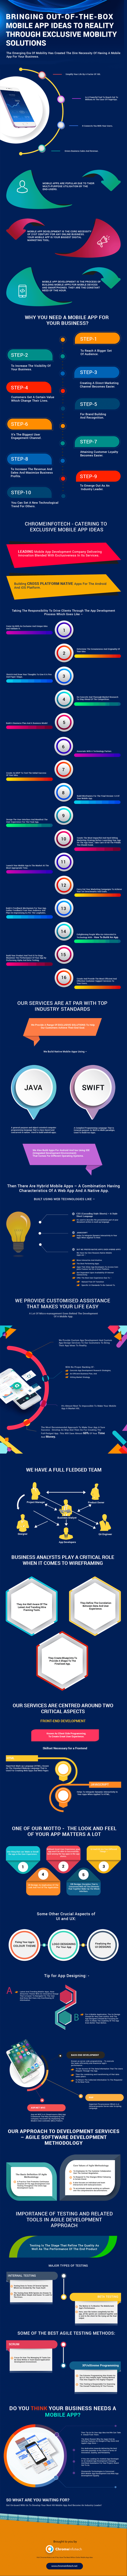 Mobile app development page infographic